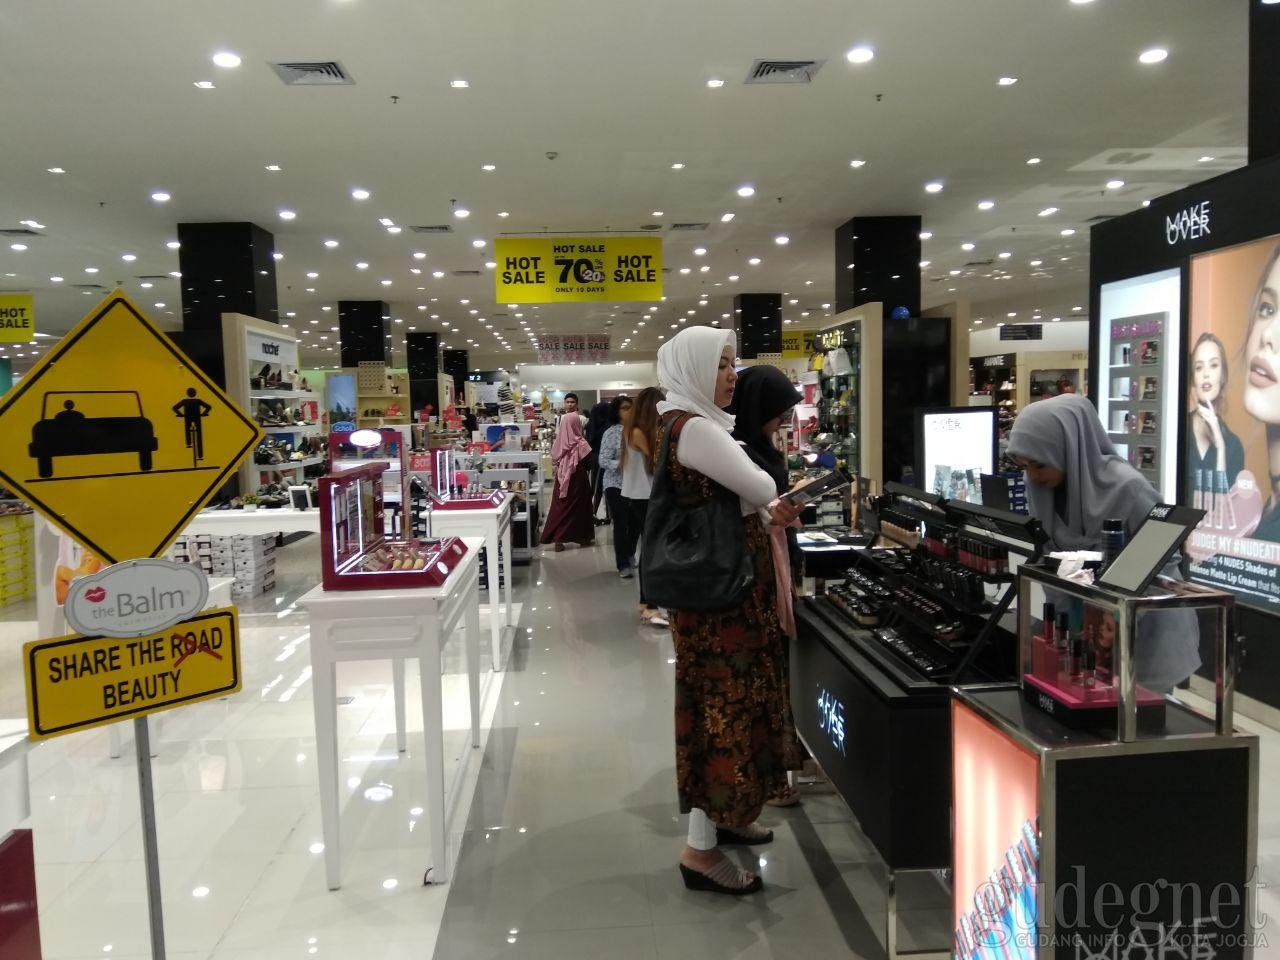 Wow, Centro Gelar Promo HOT SALE UP TO 70% + 20% OFF